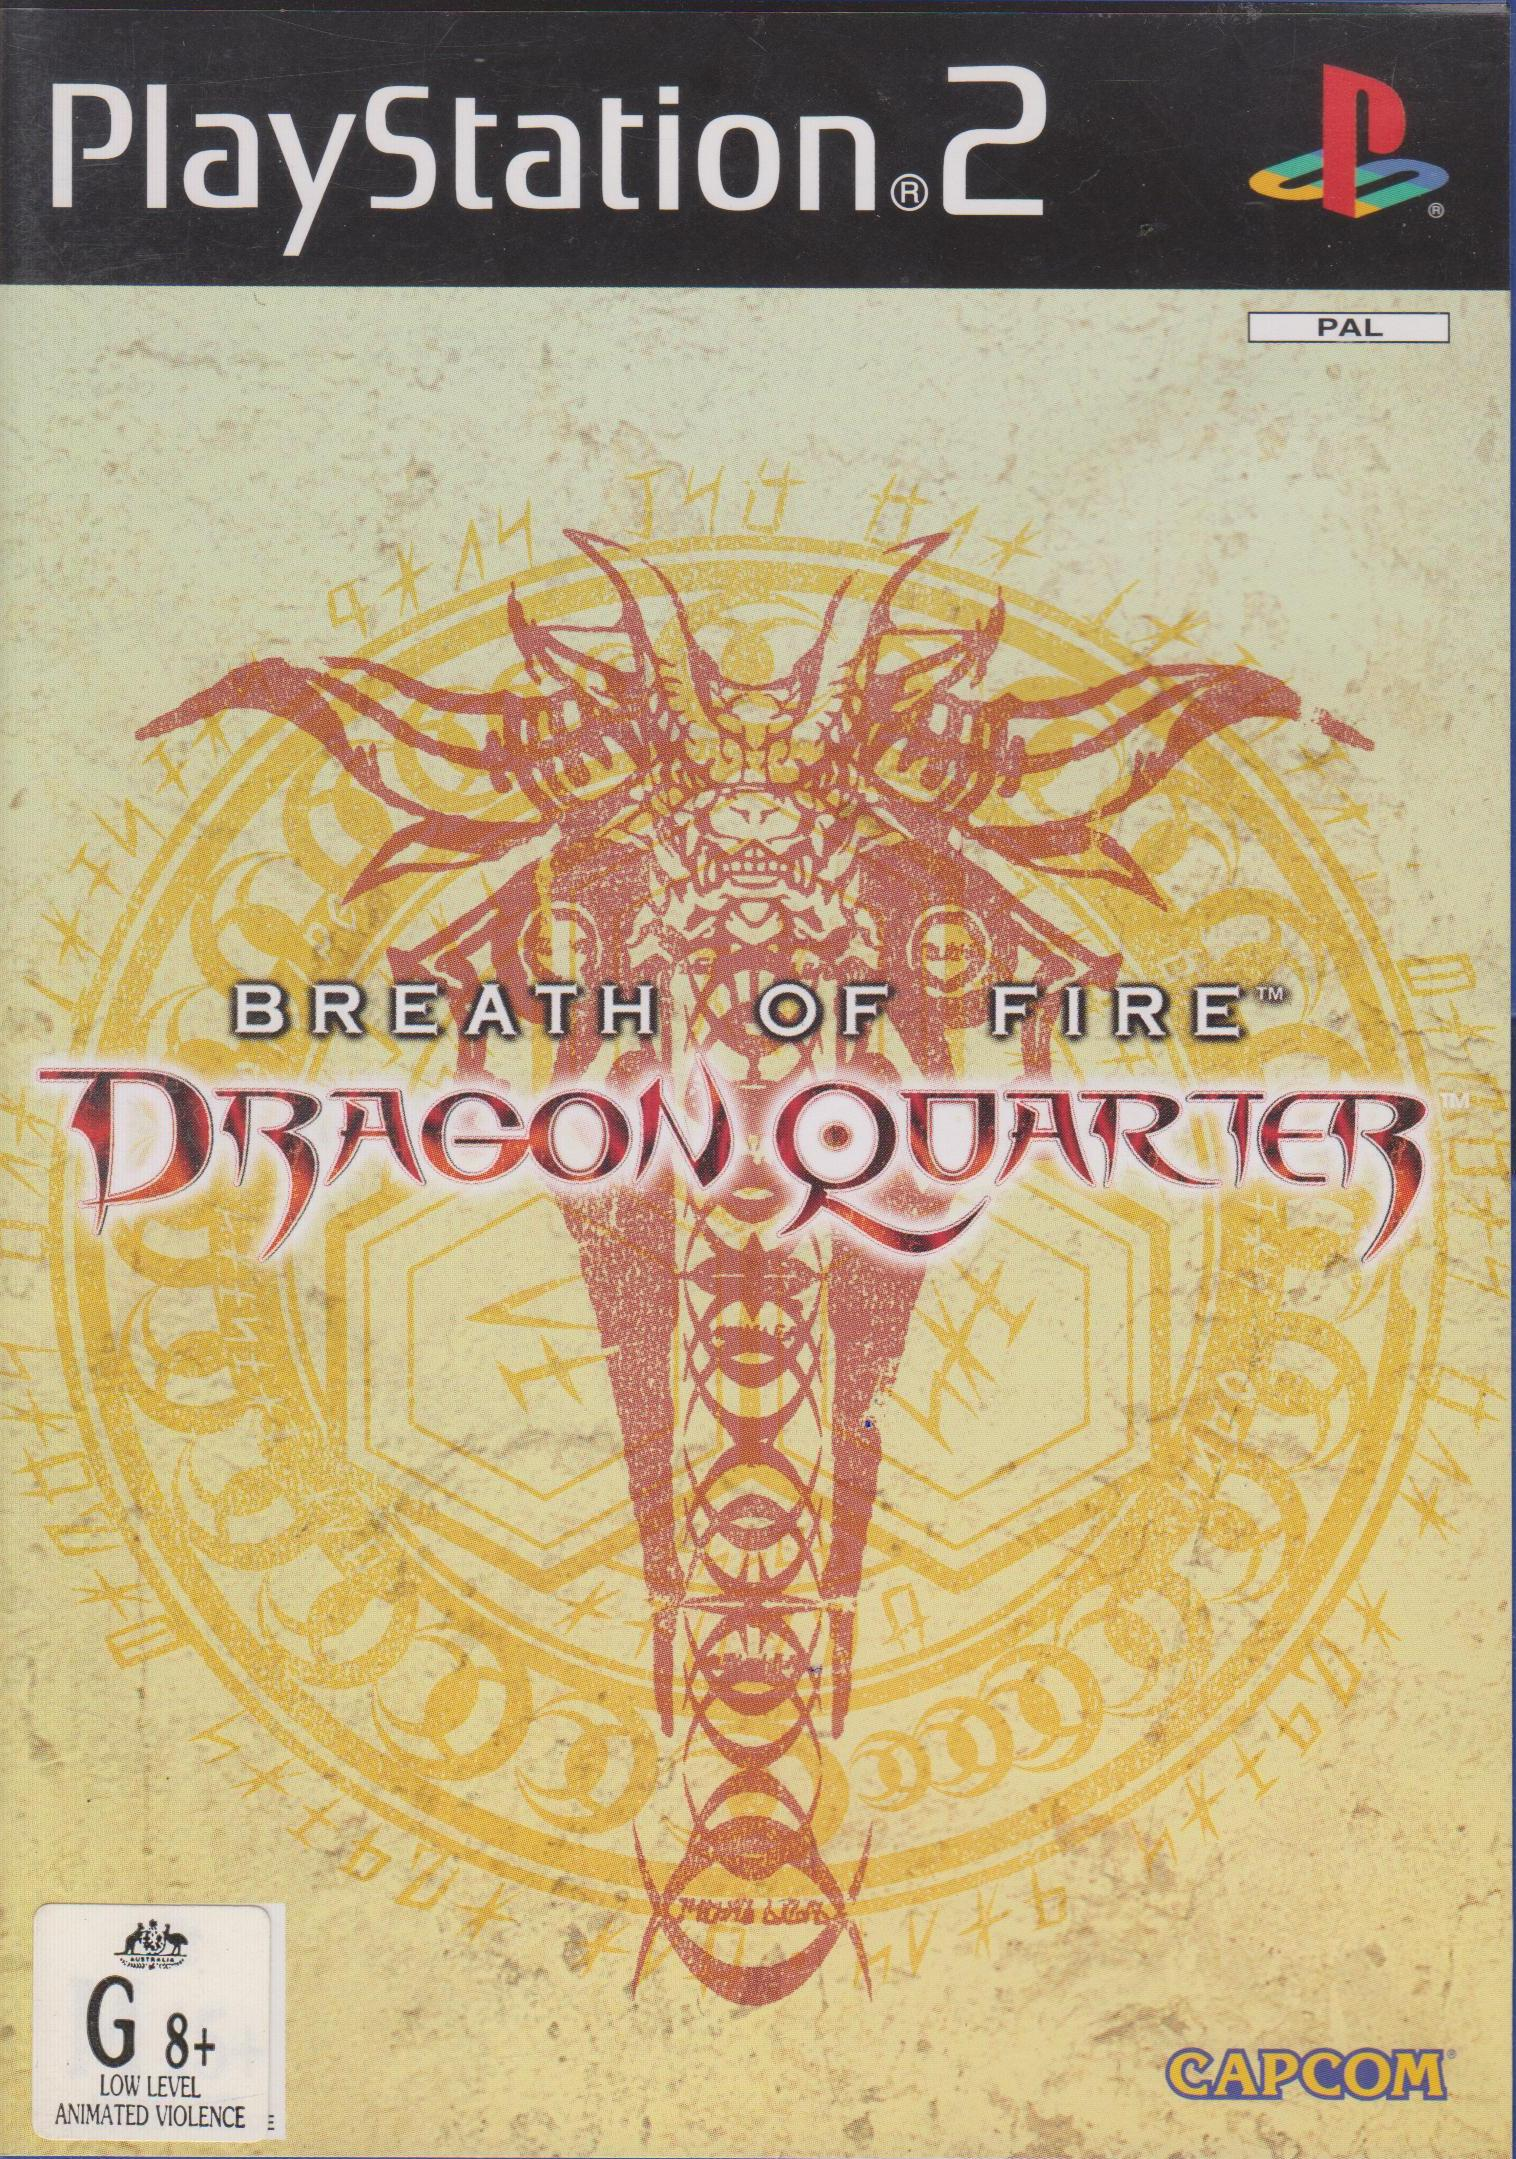 Breath Of Fire Dragon Quarter Details Launchbox Games